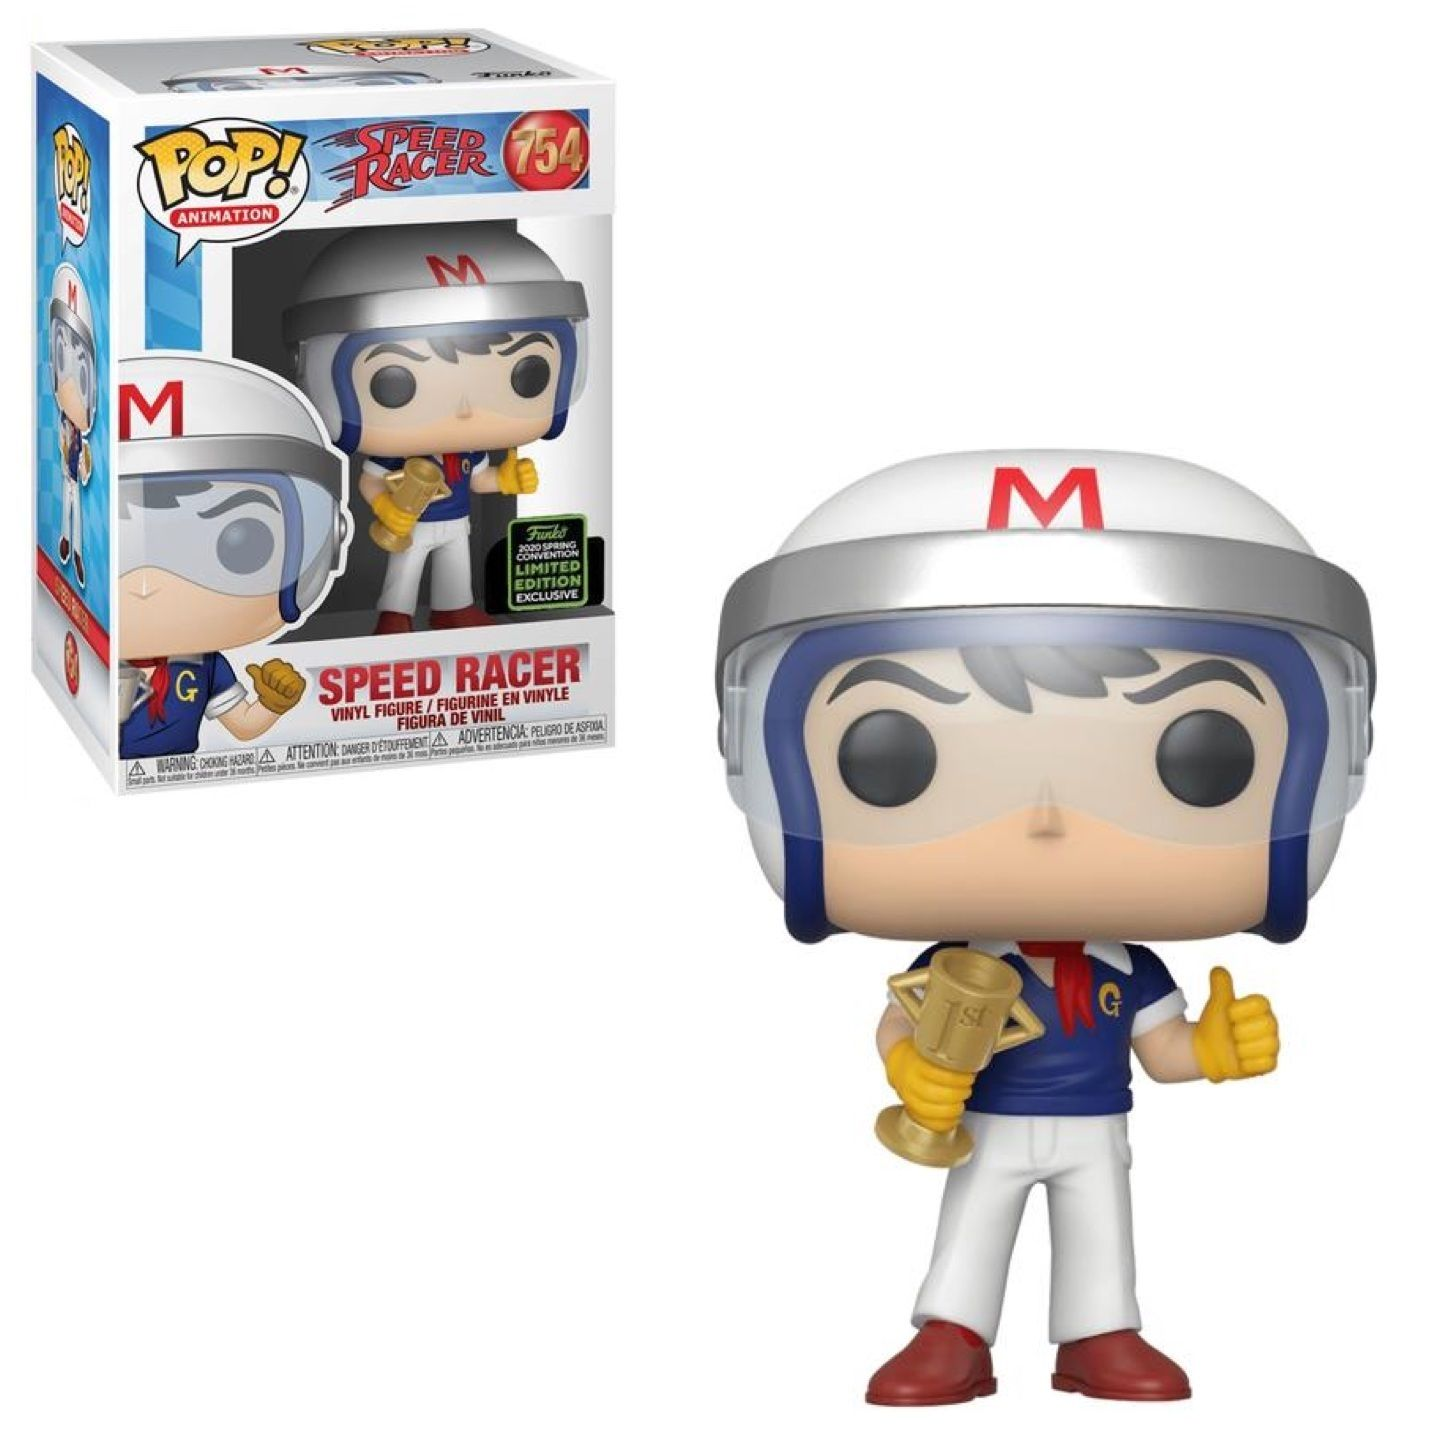 Funko Pop! Speed Racer (with Trophy) [Spring Convention]